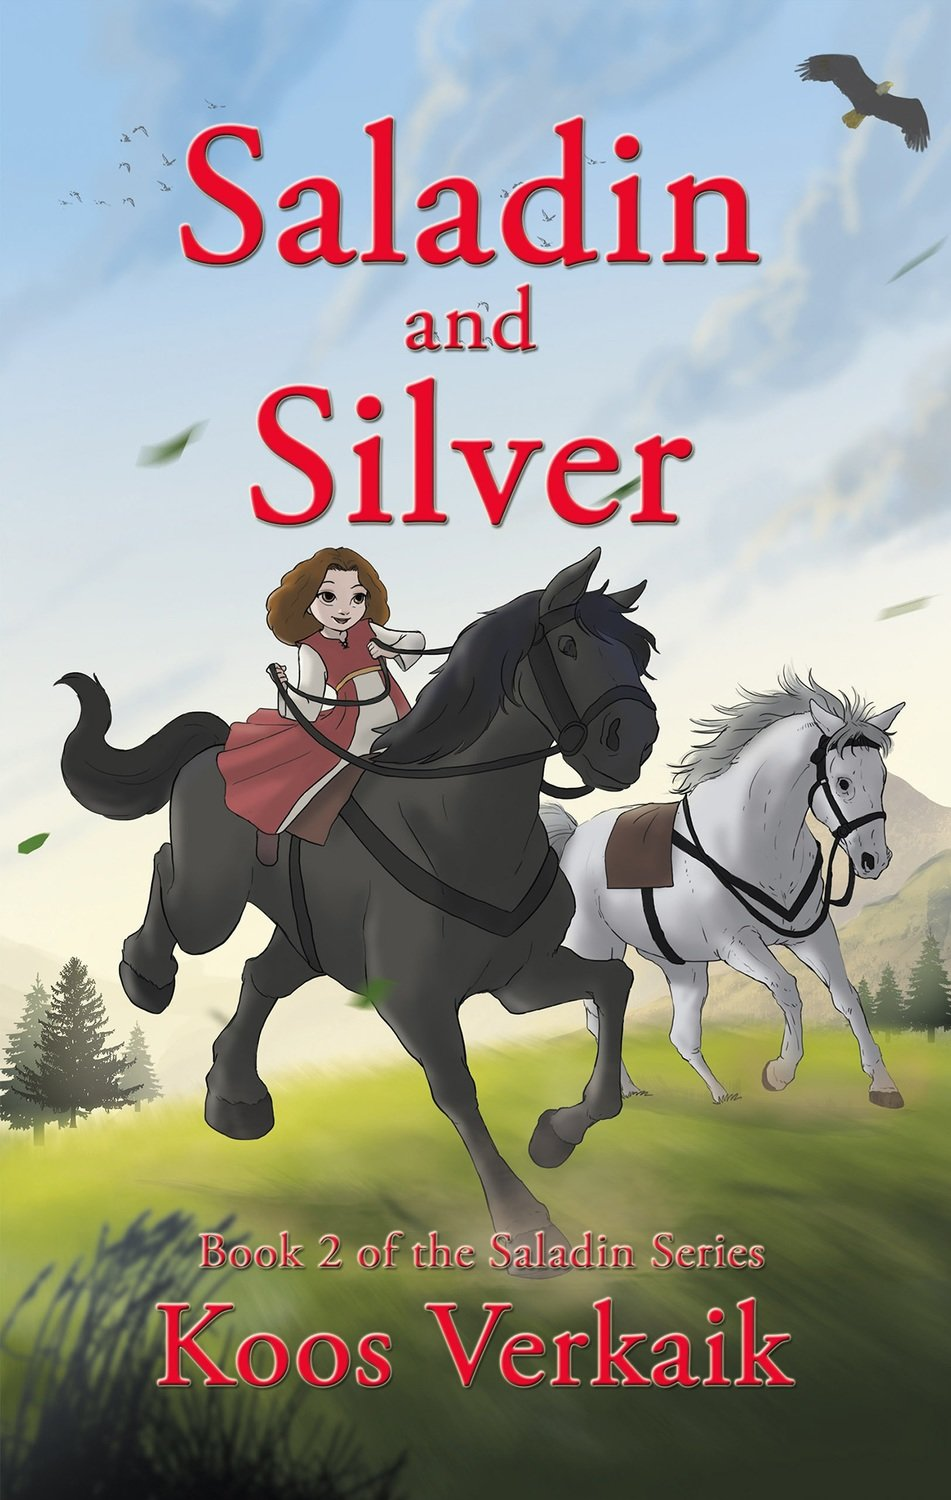 Saladin and Silver - Book 2